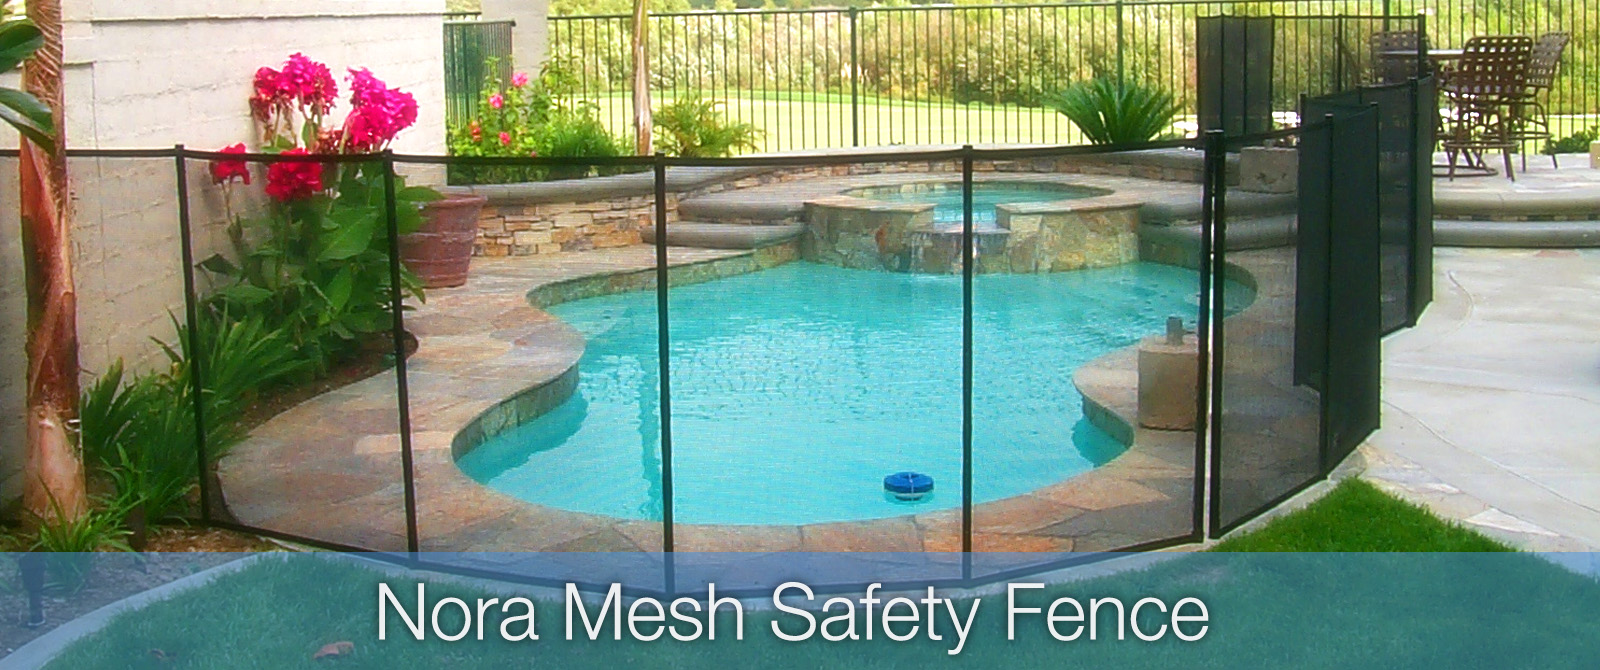 nora mesh safety fence lanzarote